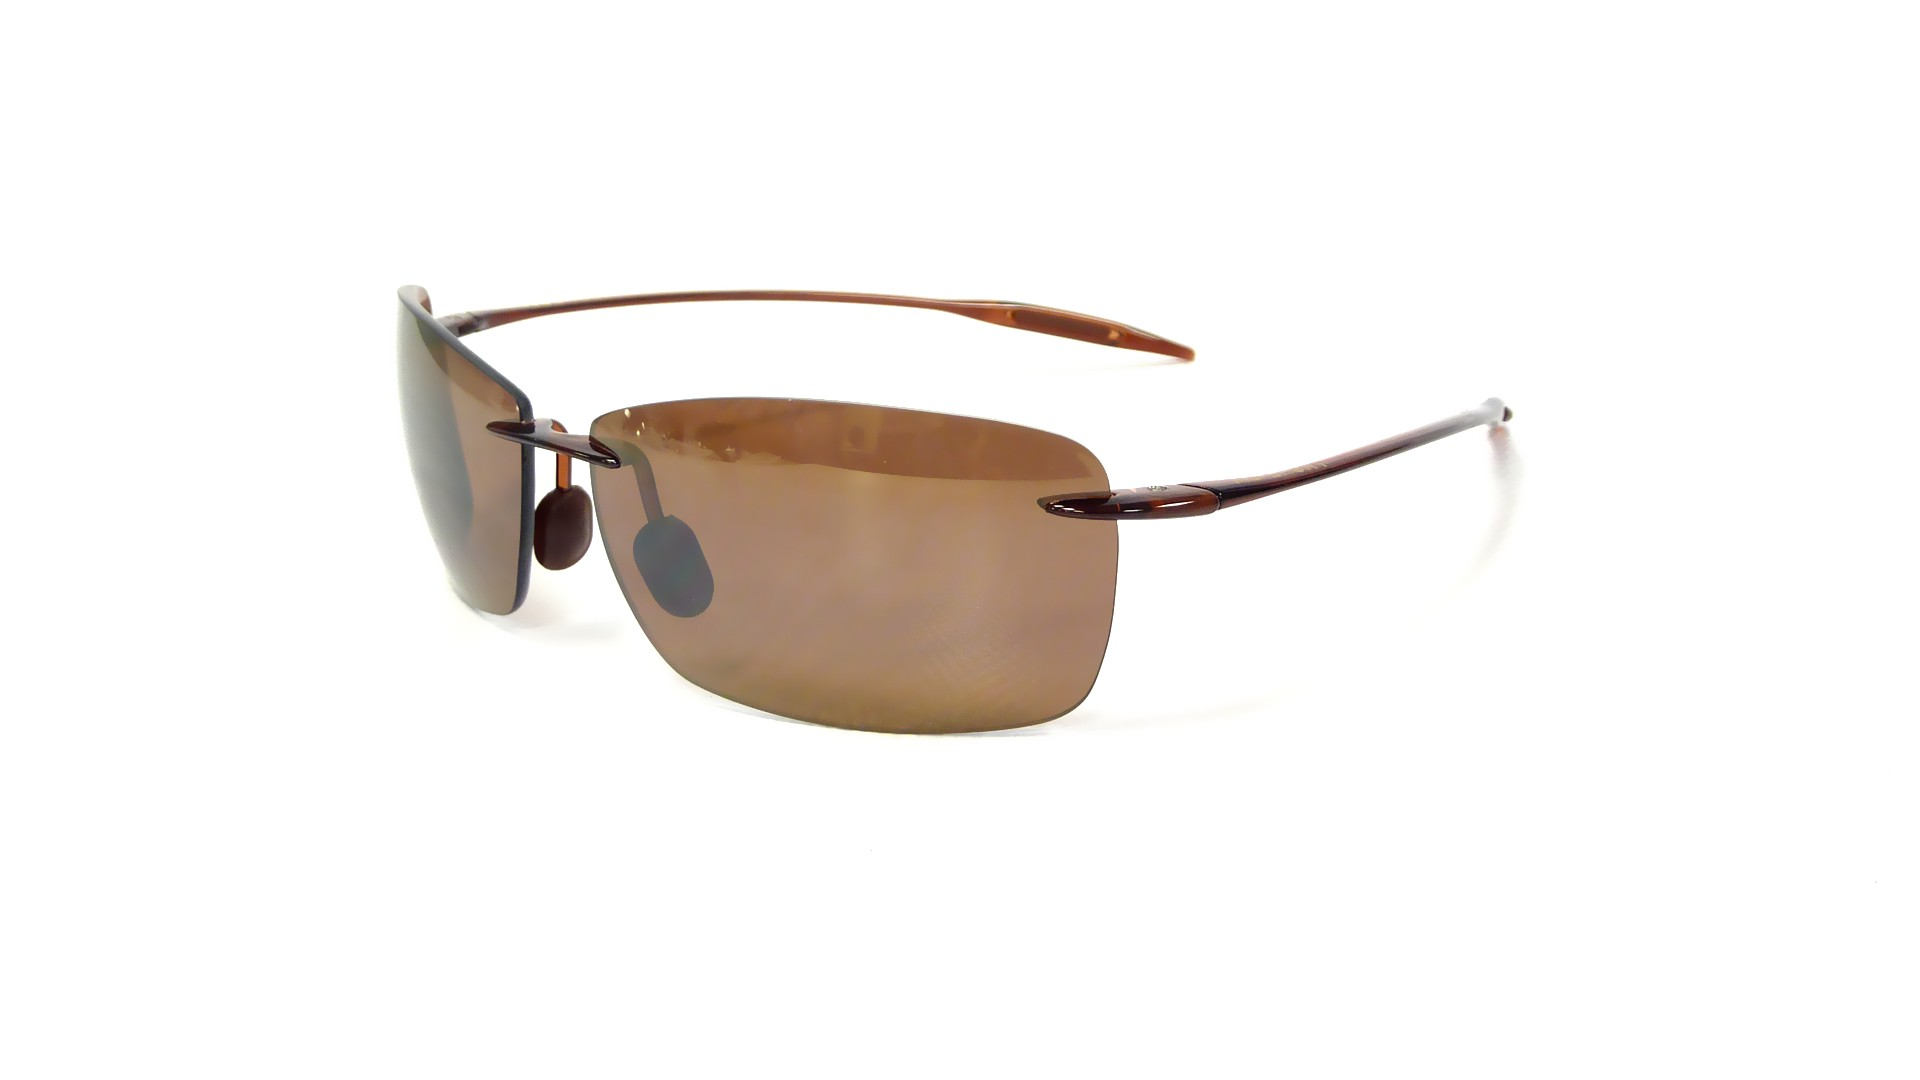 Maui Jim Lighthouse Sunglasses  jim lighthouse brown h423 26 65 13 polarized visiofactory